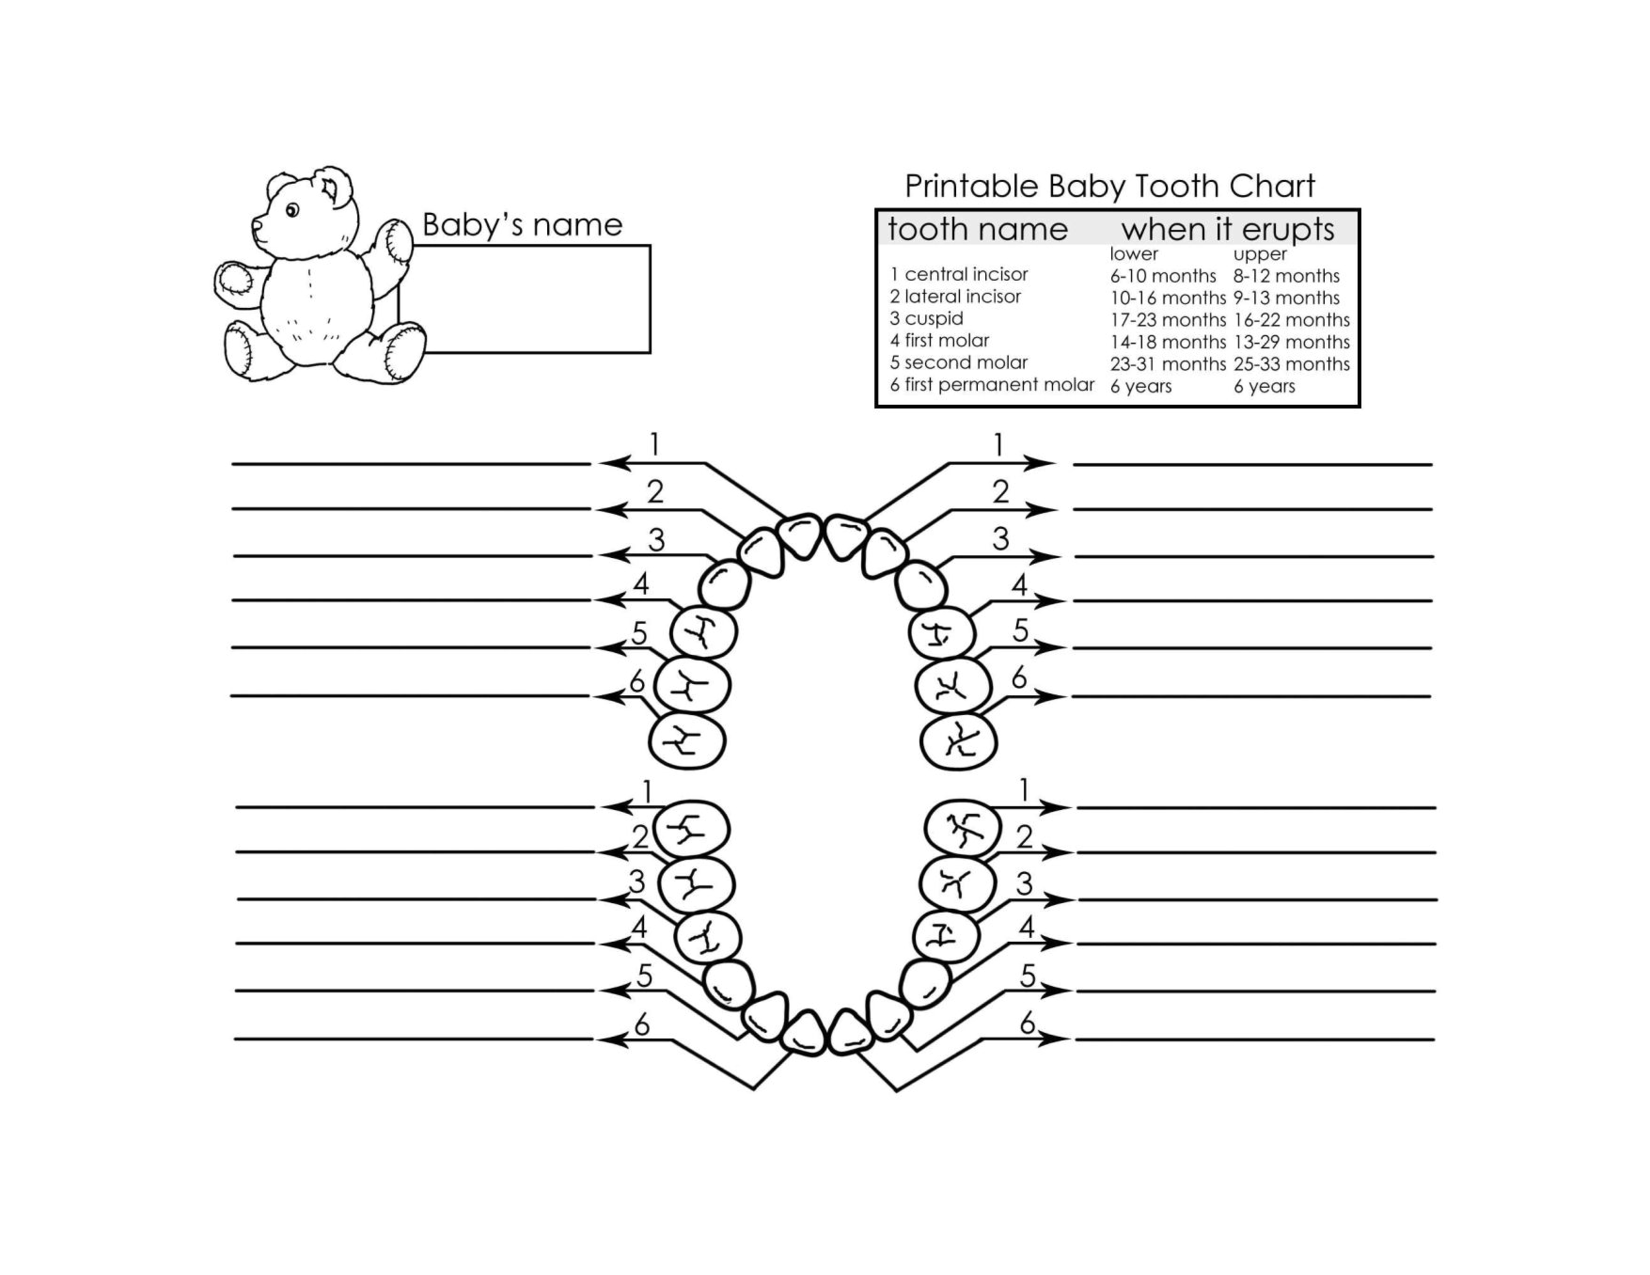 babies google and charts on pinterest : baby teeth diagram - findchart.co